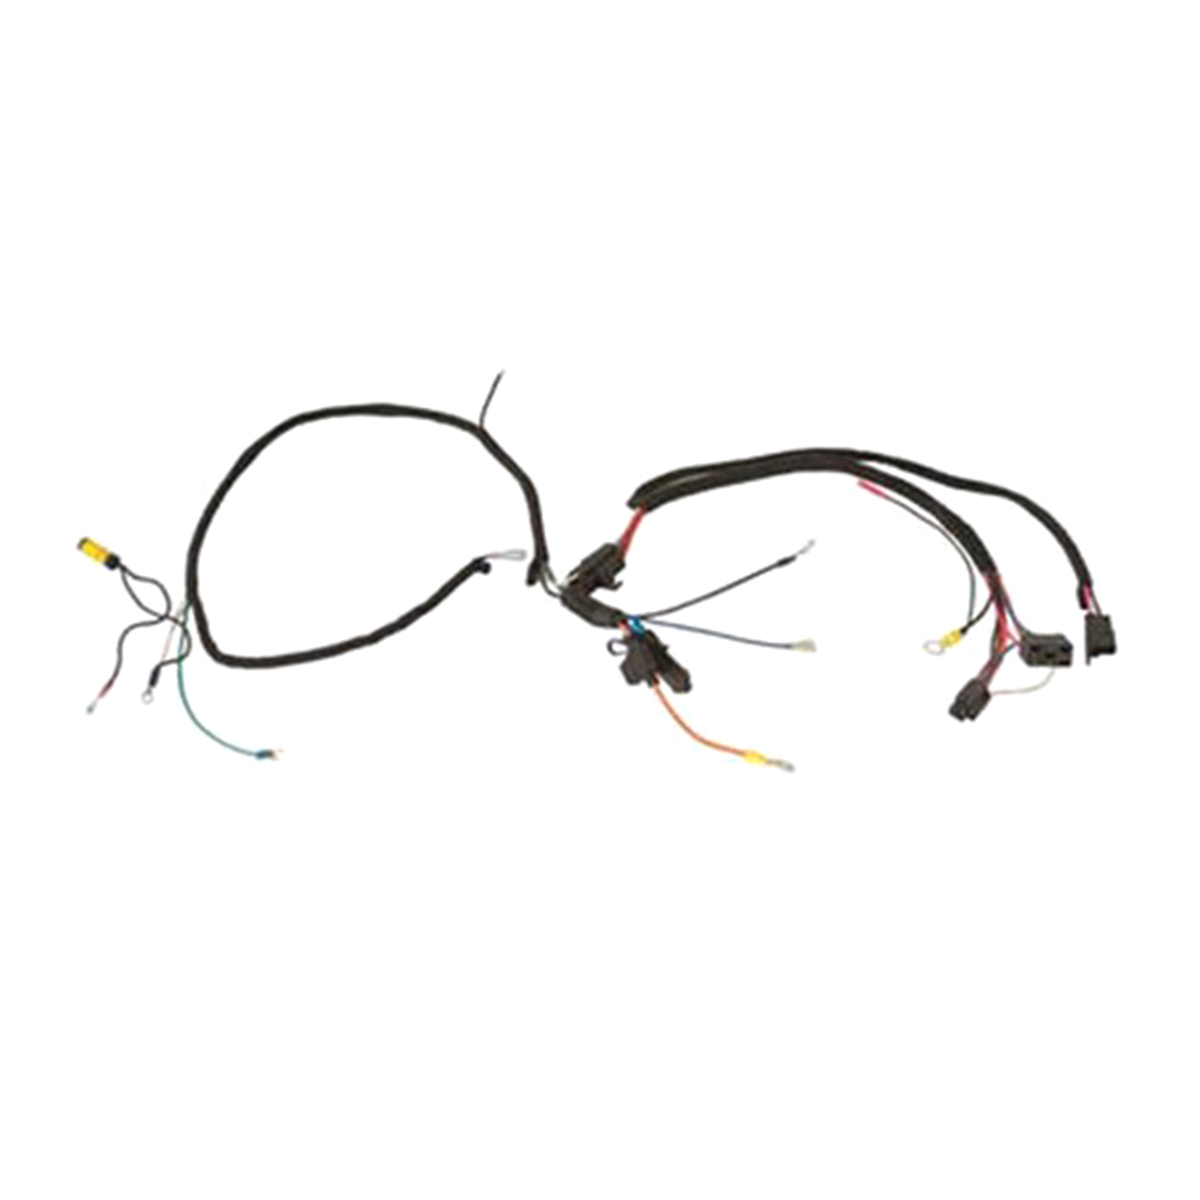 500028 500030 dixie chopper kohler generac wiring harness chopper wiring harness at mifinder.co